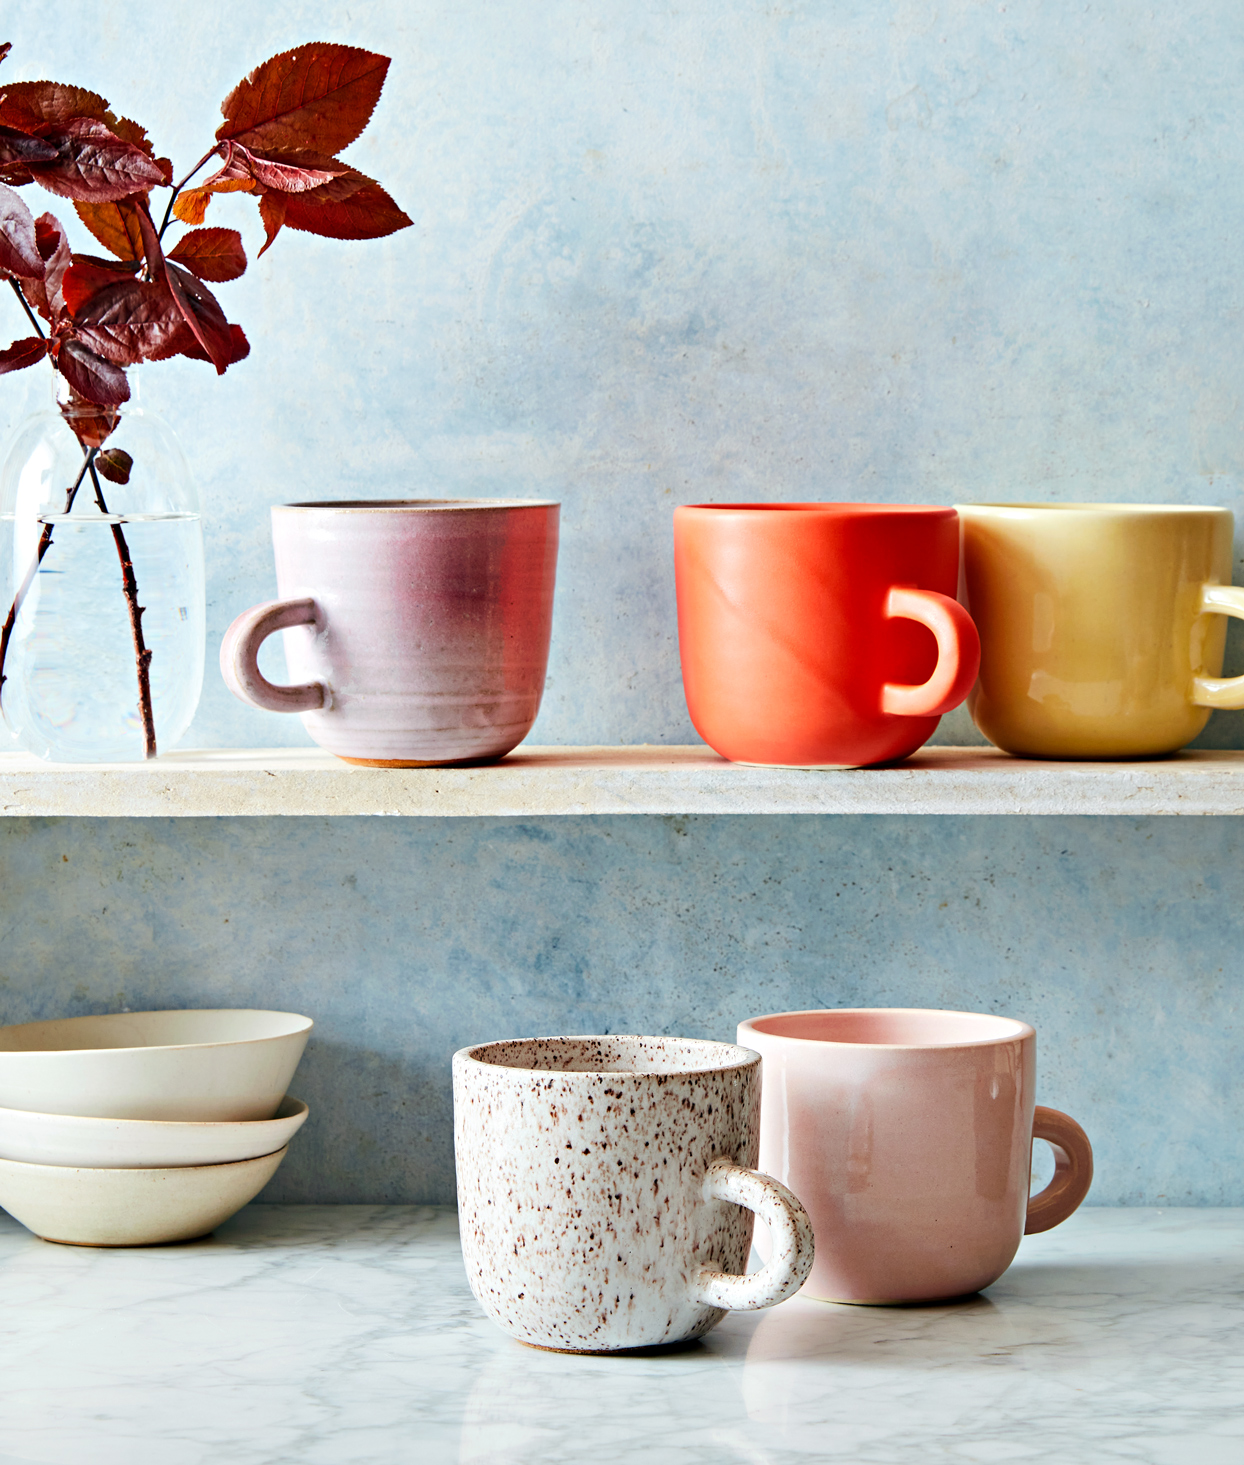 cups and bowls from Ank Ceramics based in Maine